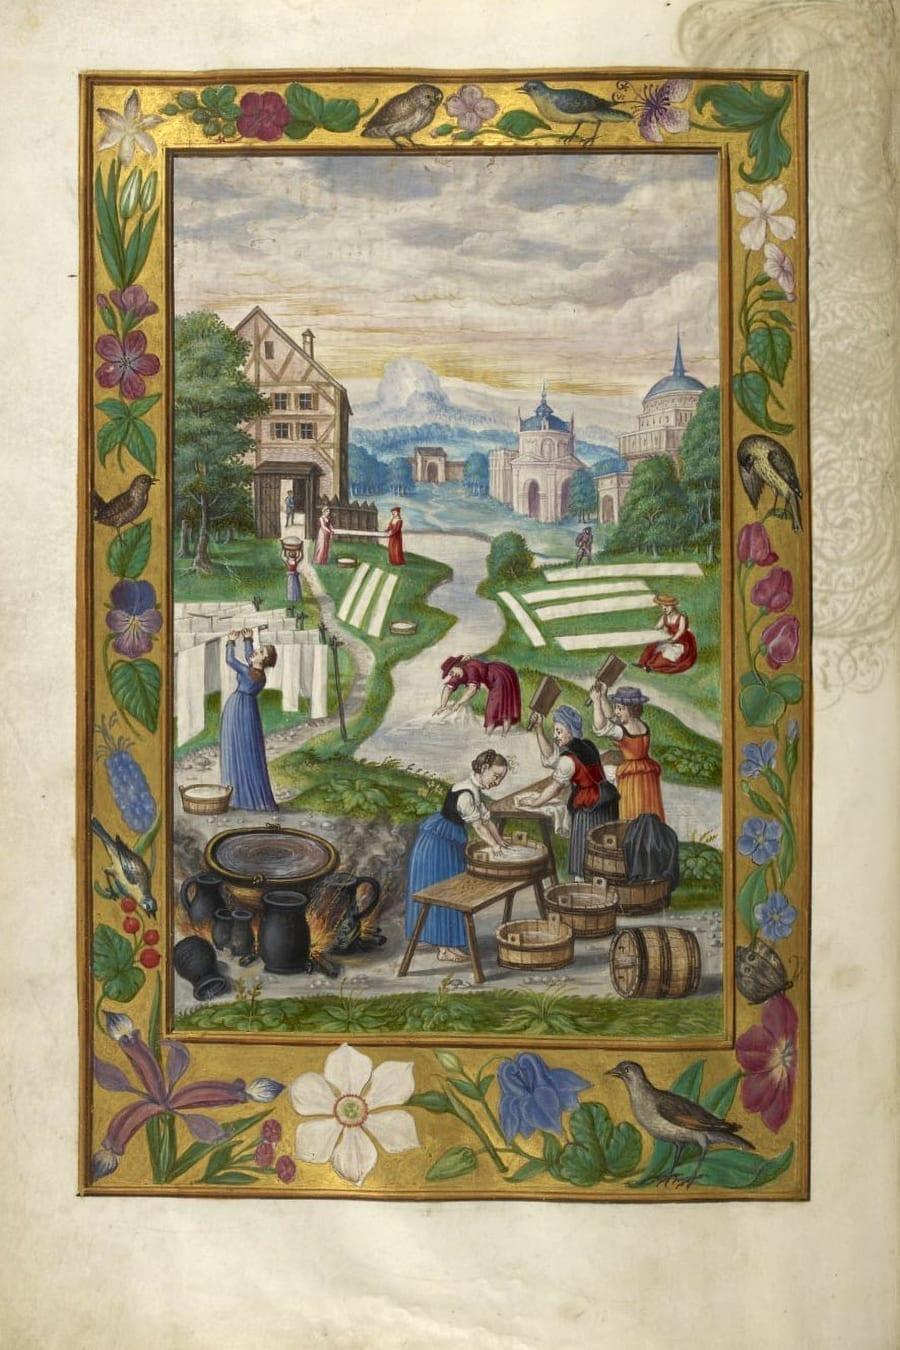 Illustration of women washing clothes from the Alchemical manuscript Splendor Solis